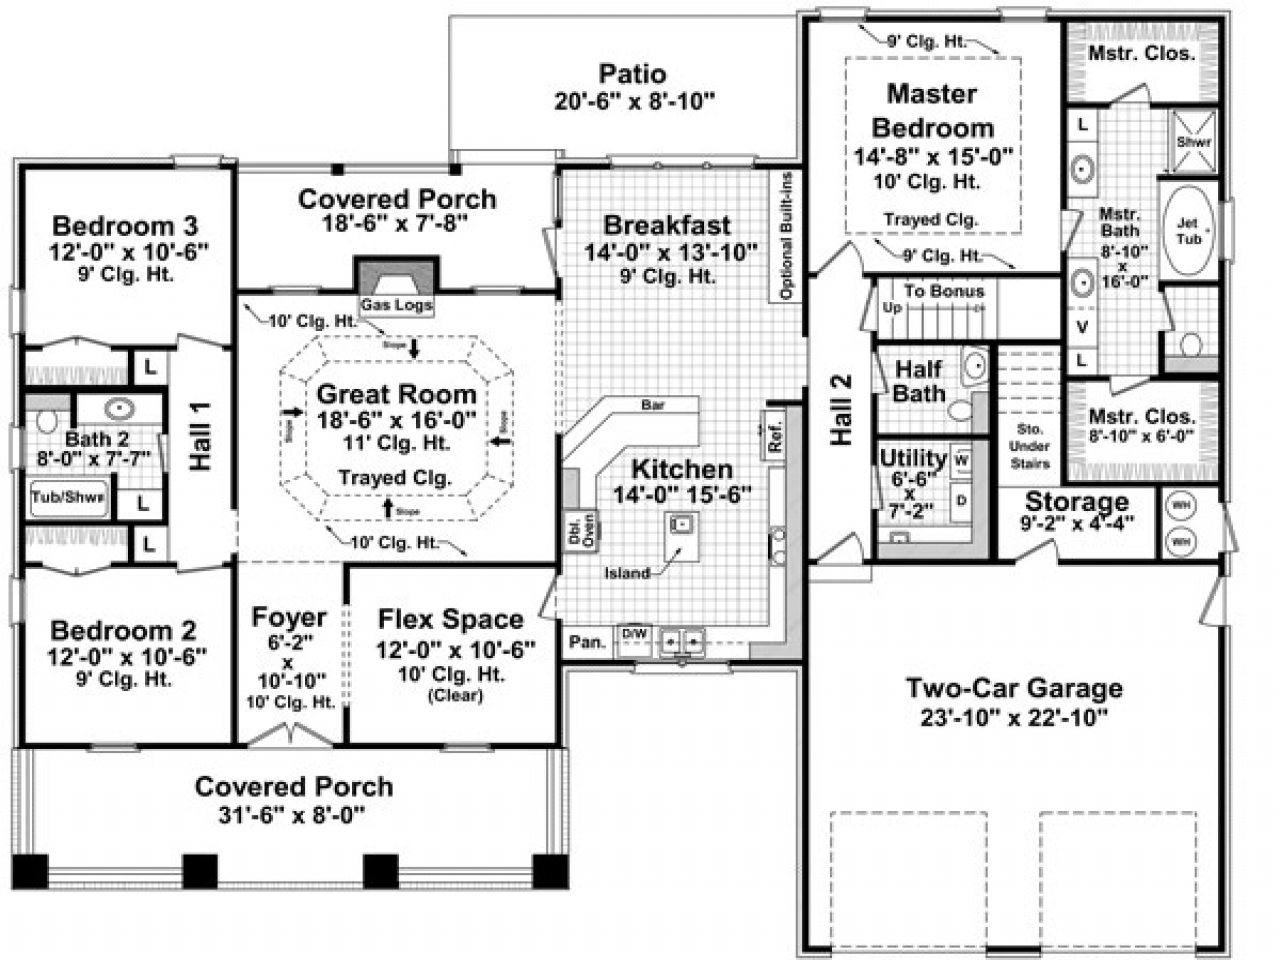 Bungalow house floor plans vintage bungalow house plans for Bungalow house plans alberta